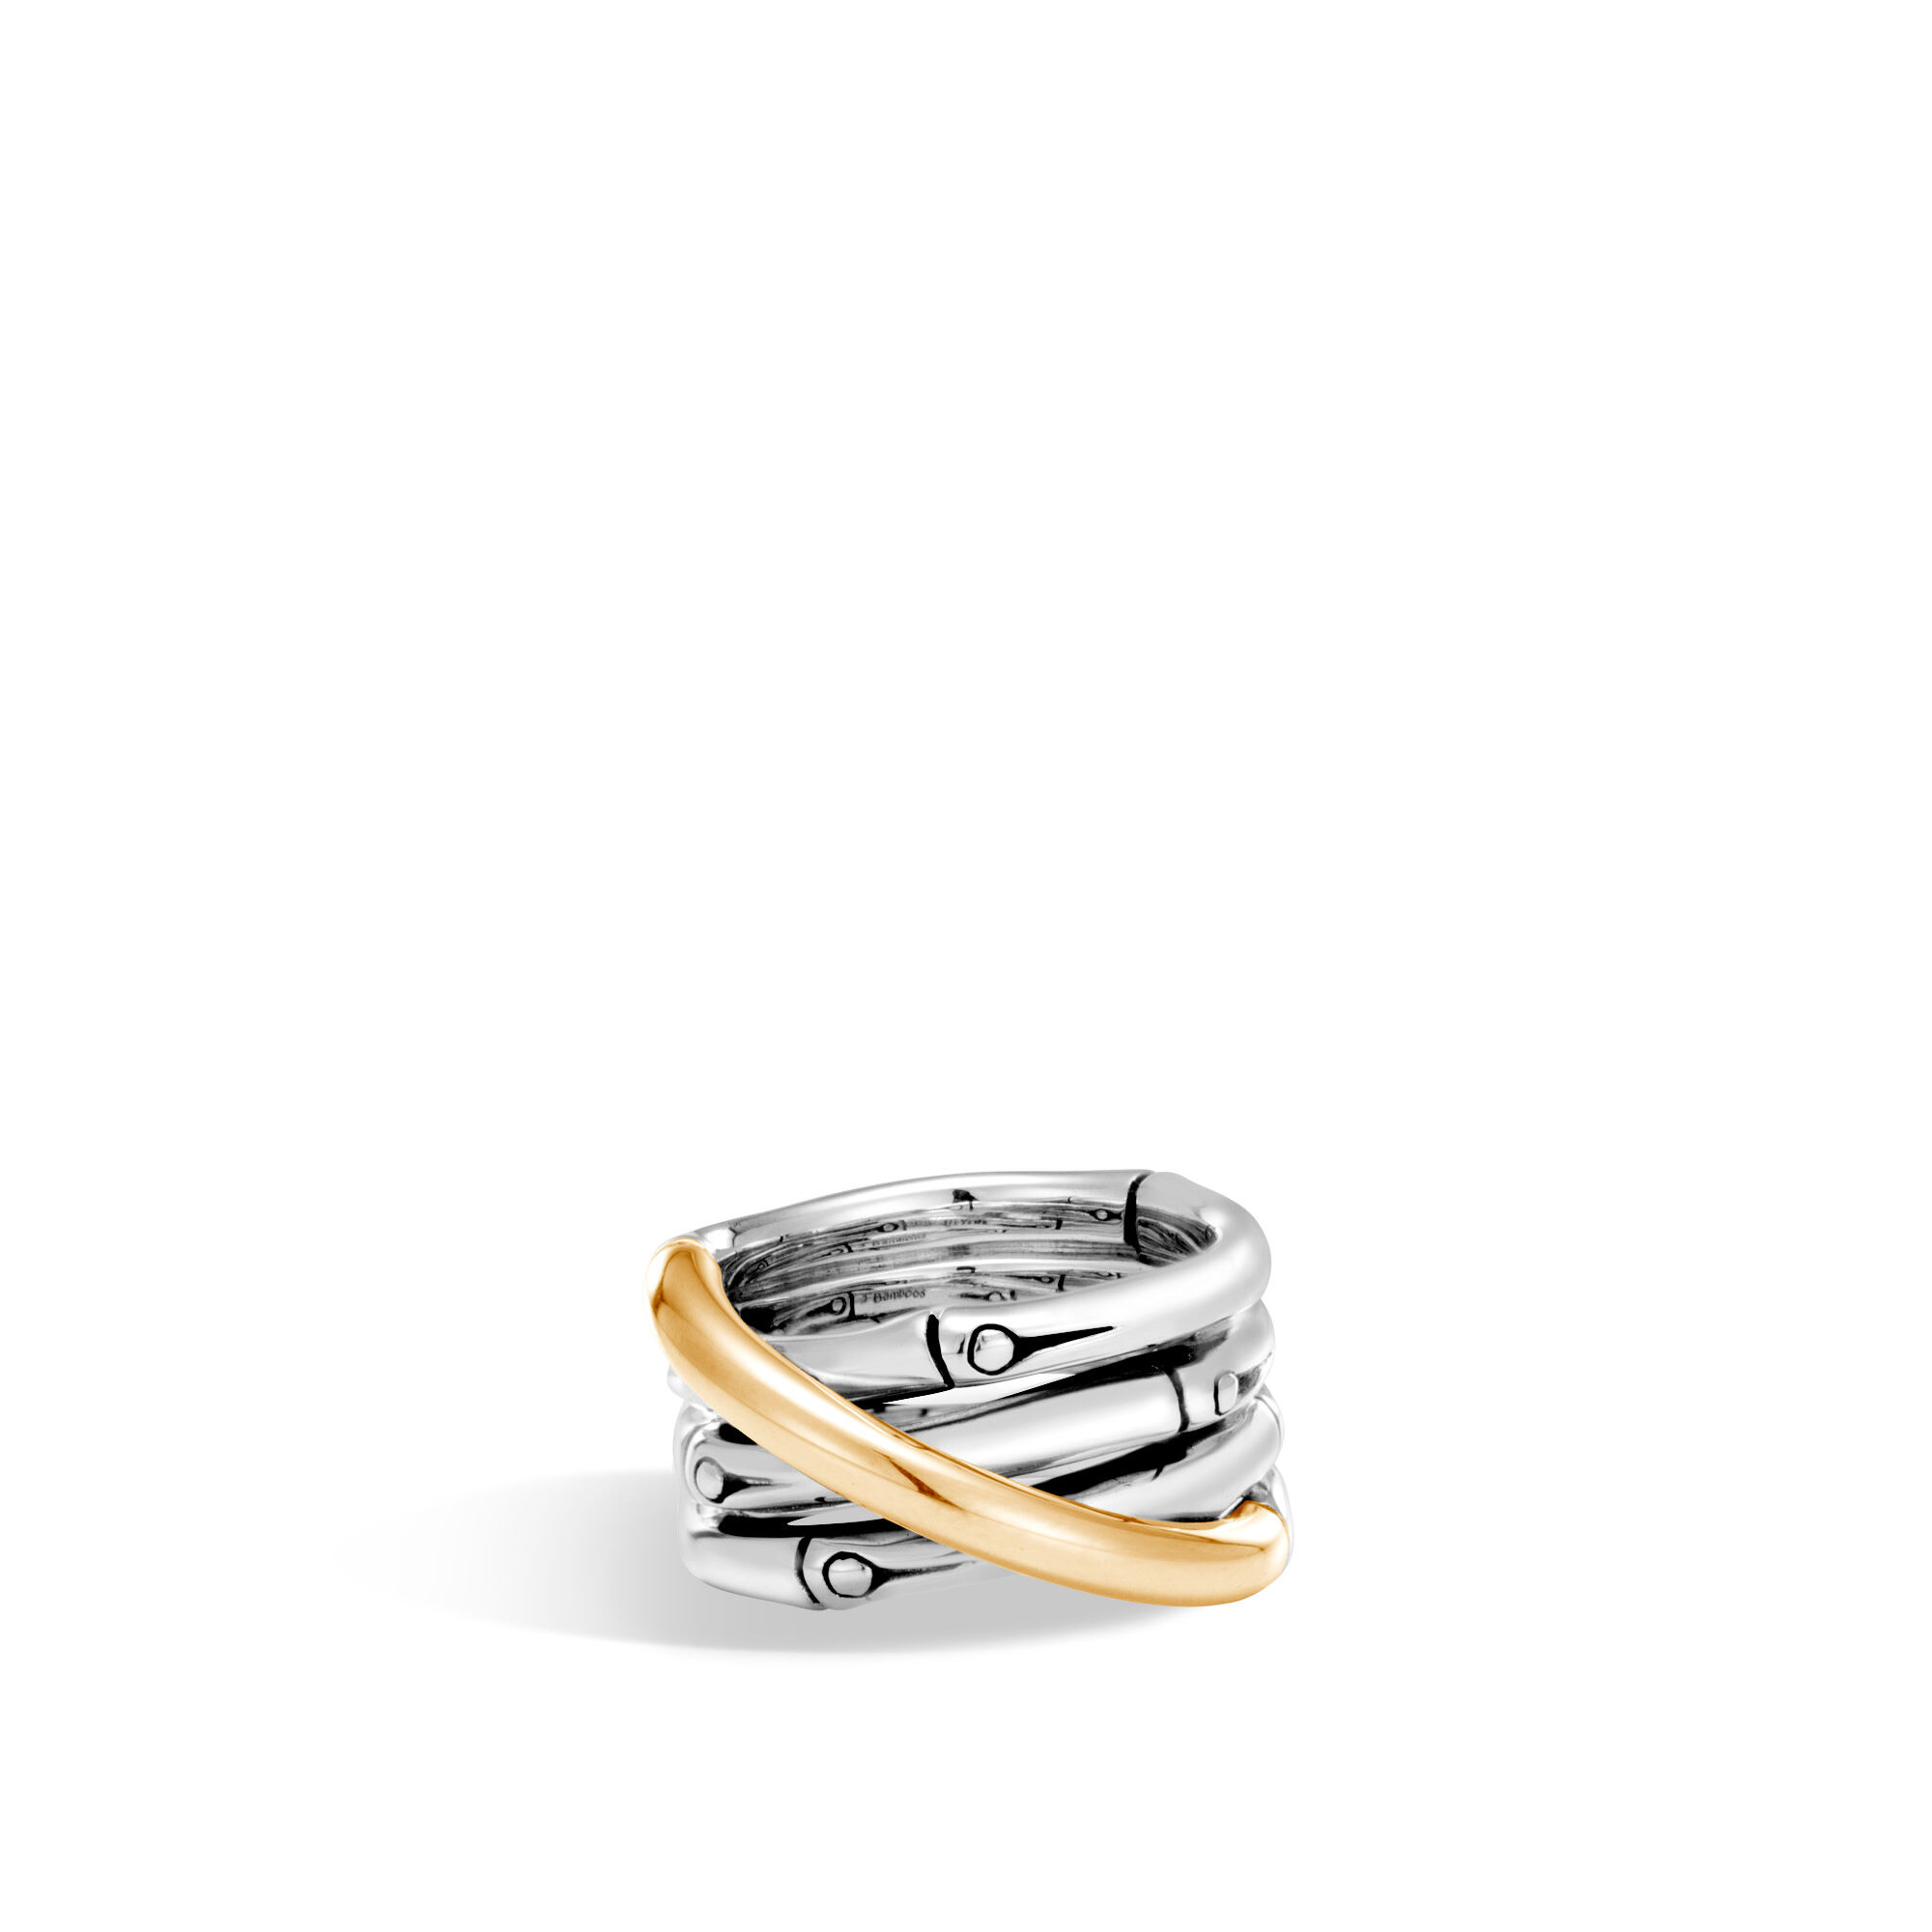 Bamboo Band Ring in Silver and 18K Gold, , large